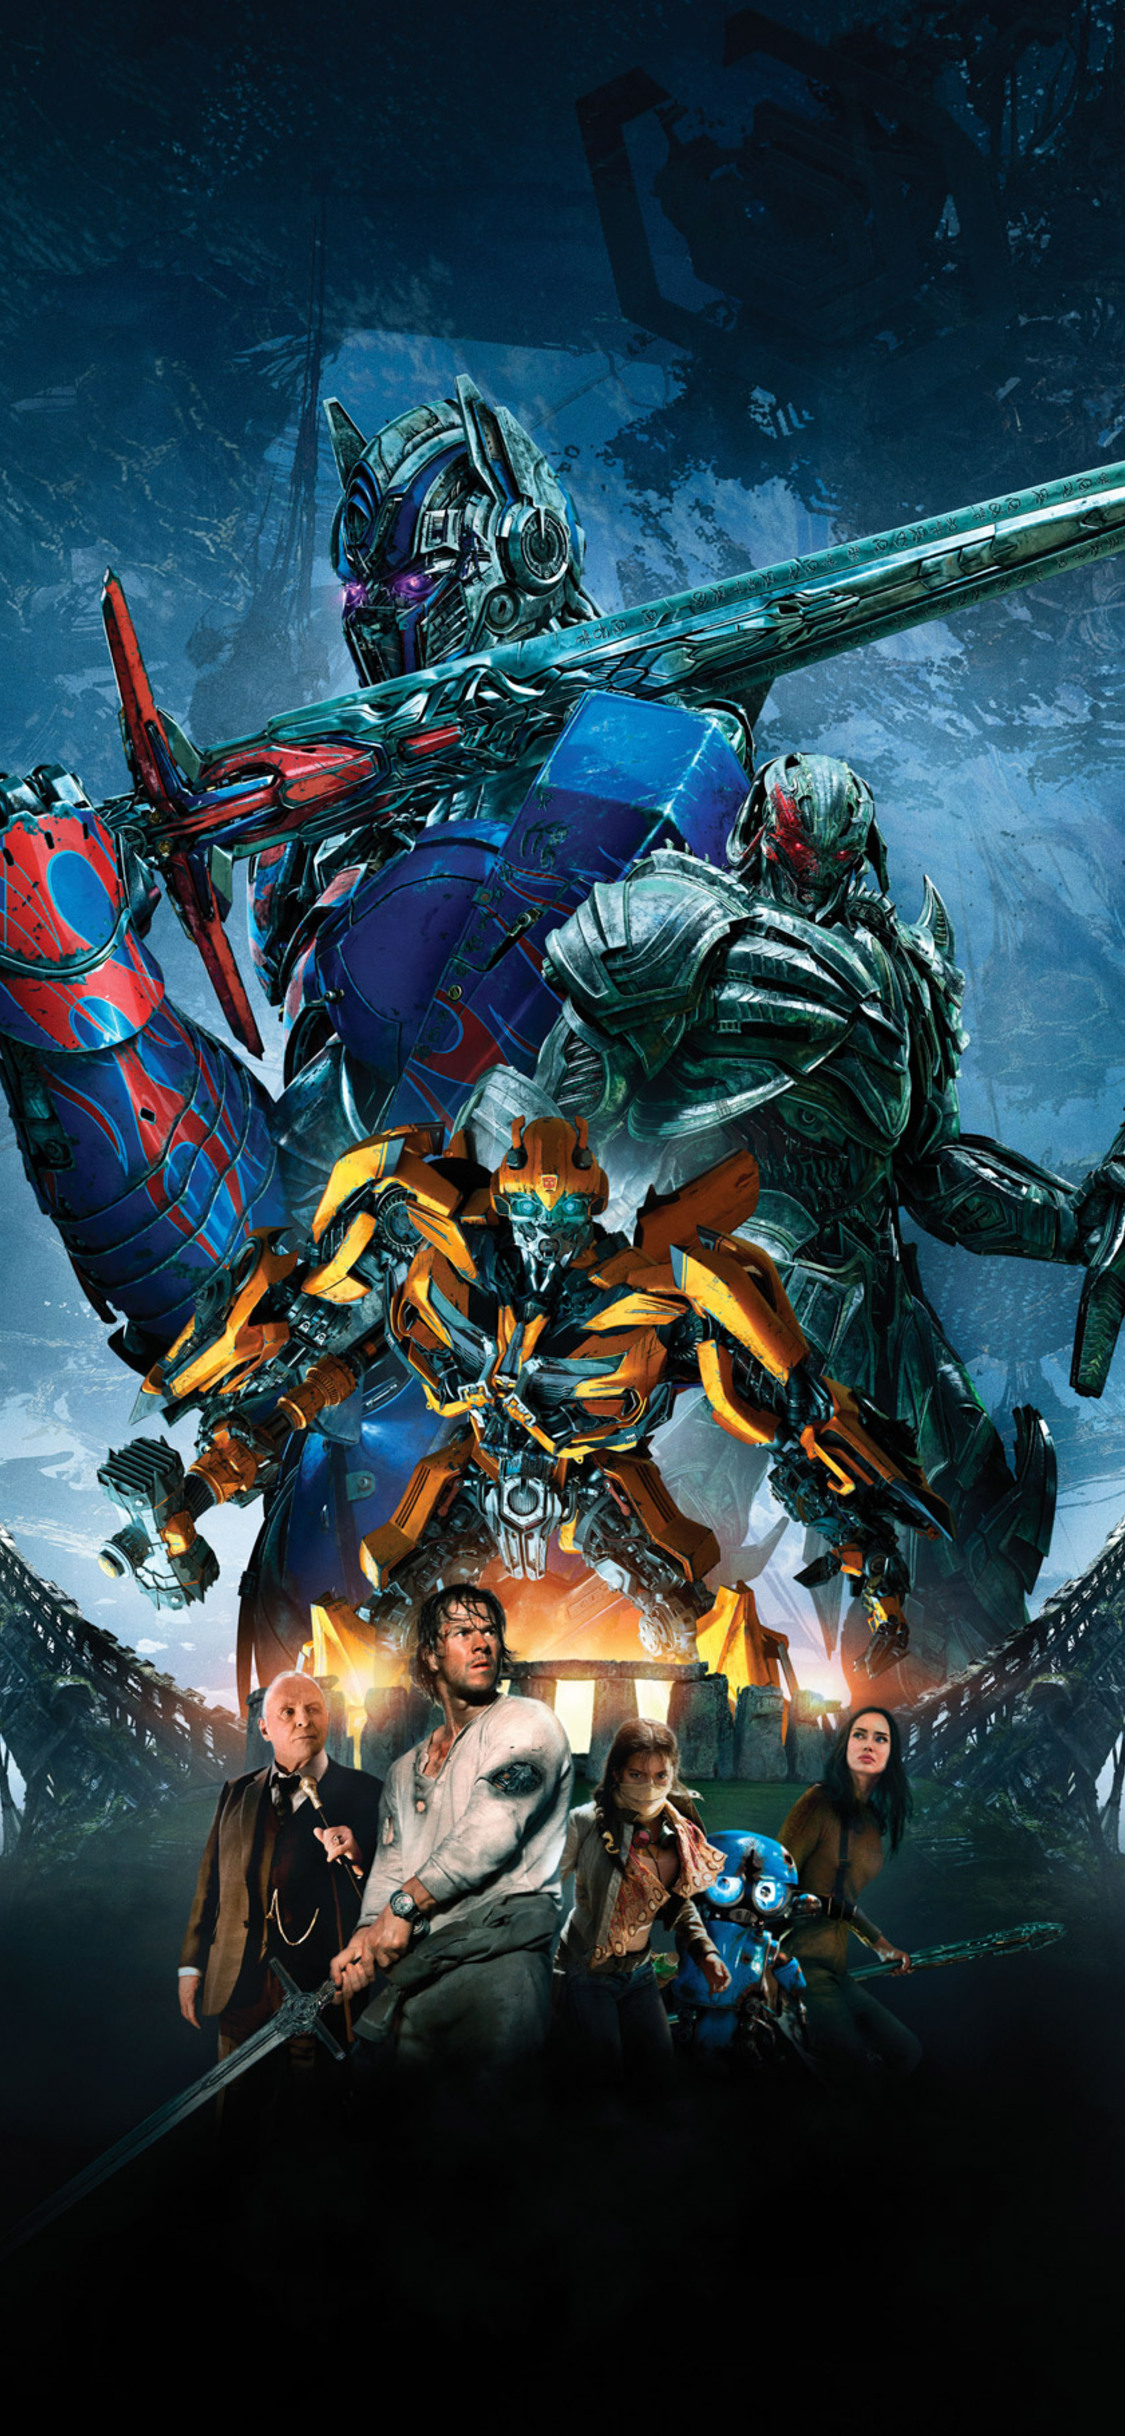 transformers-the-last-knight-2017-movie-8p.jpg